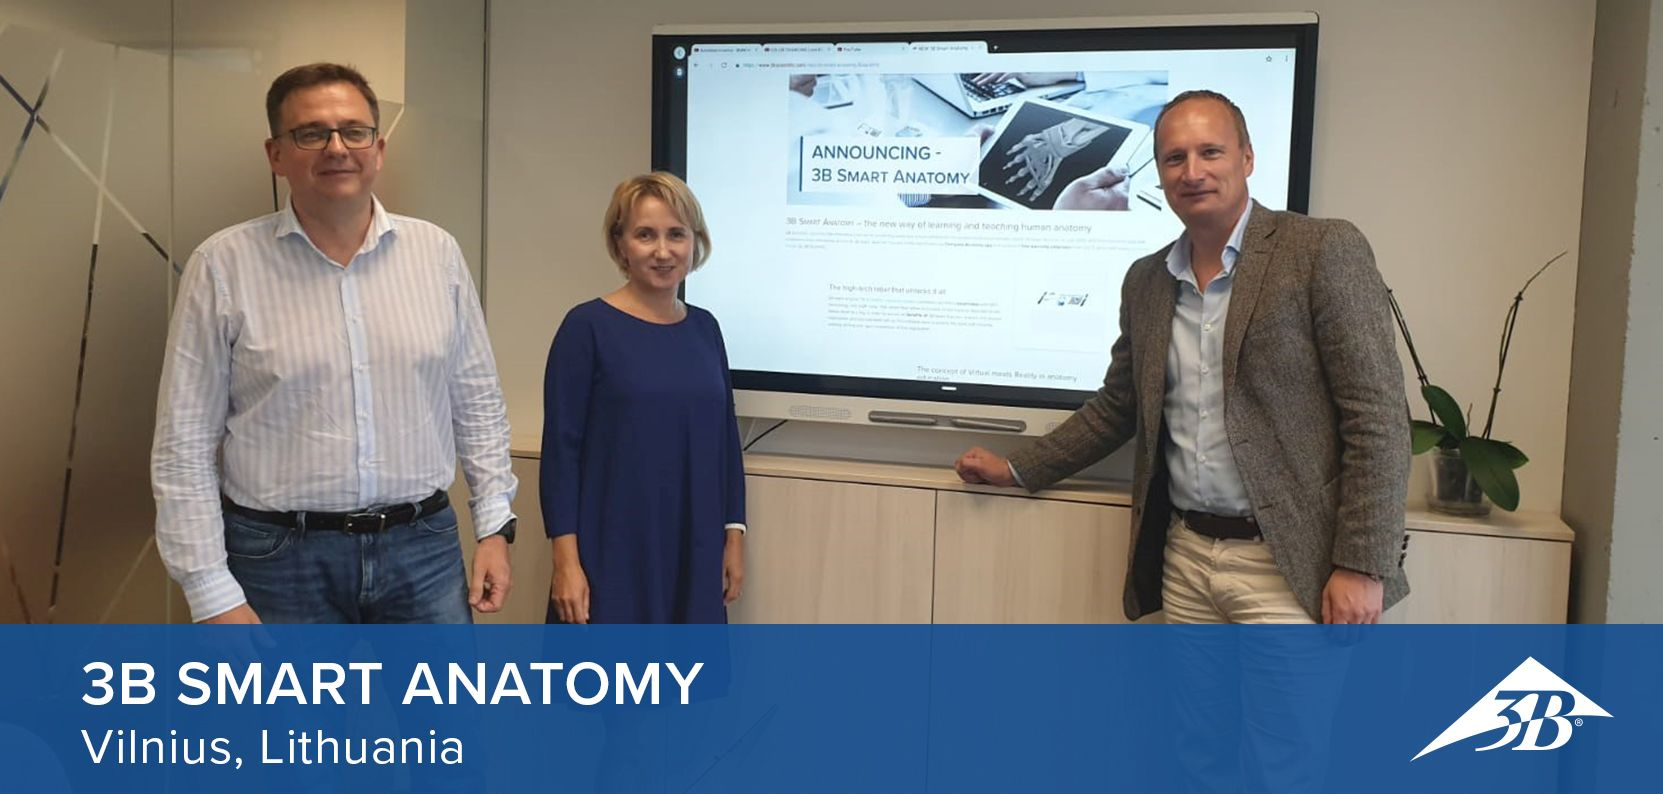 3B SMART ANATOMY in Vilnius